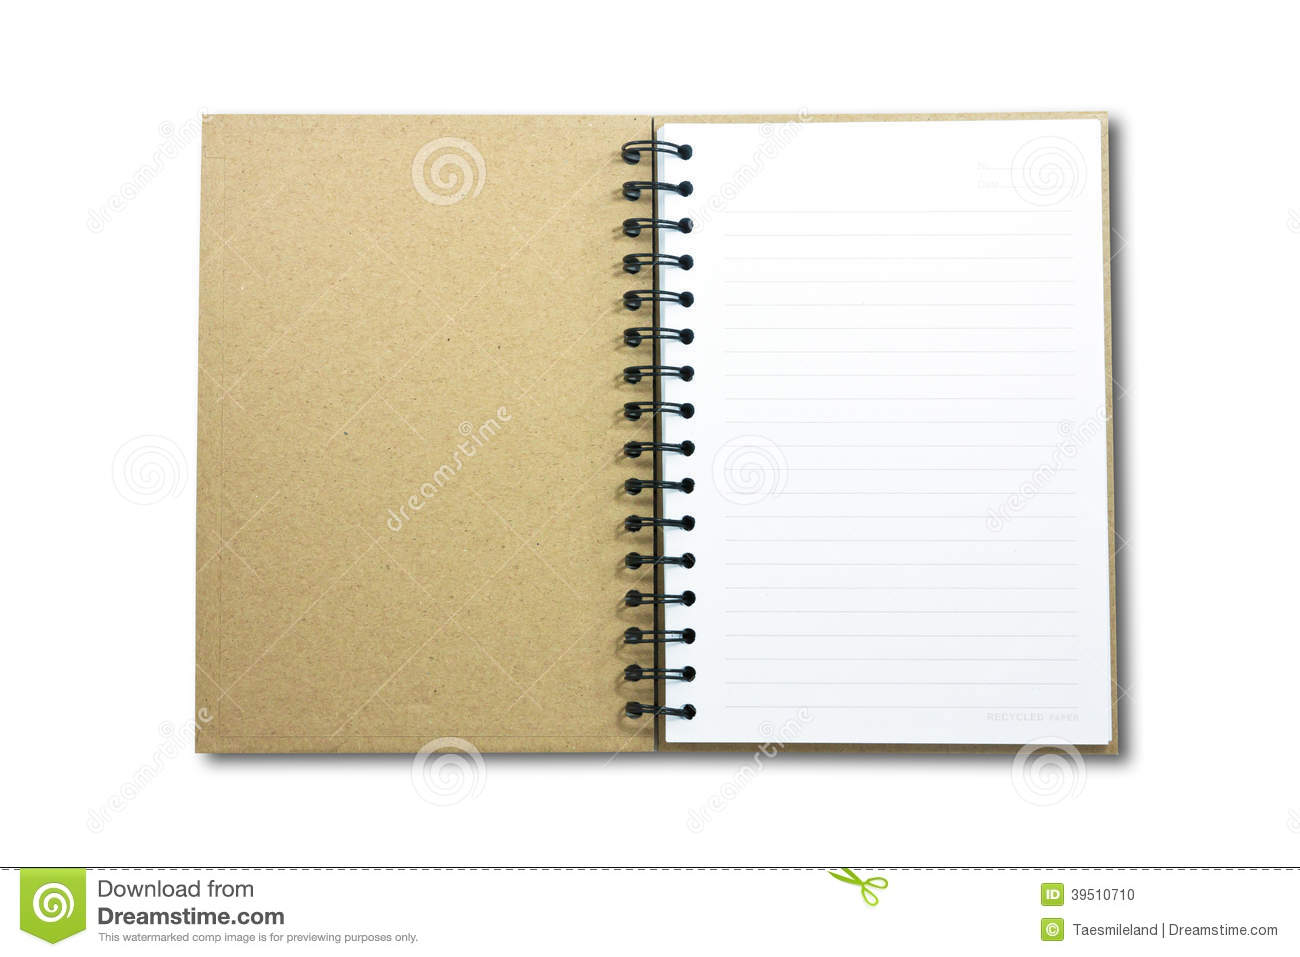 Blank NoteBook open two face